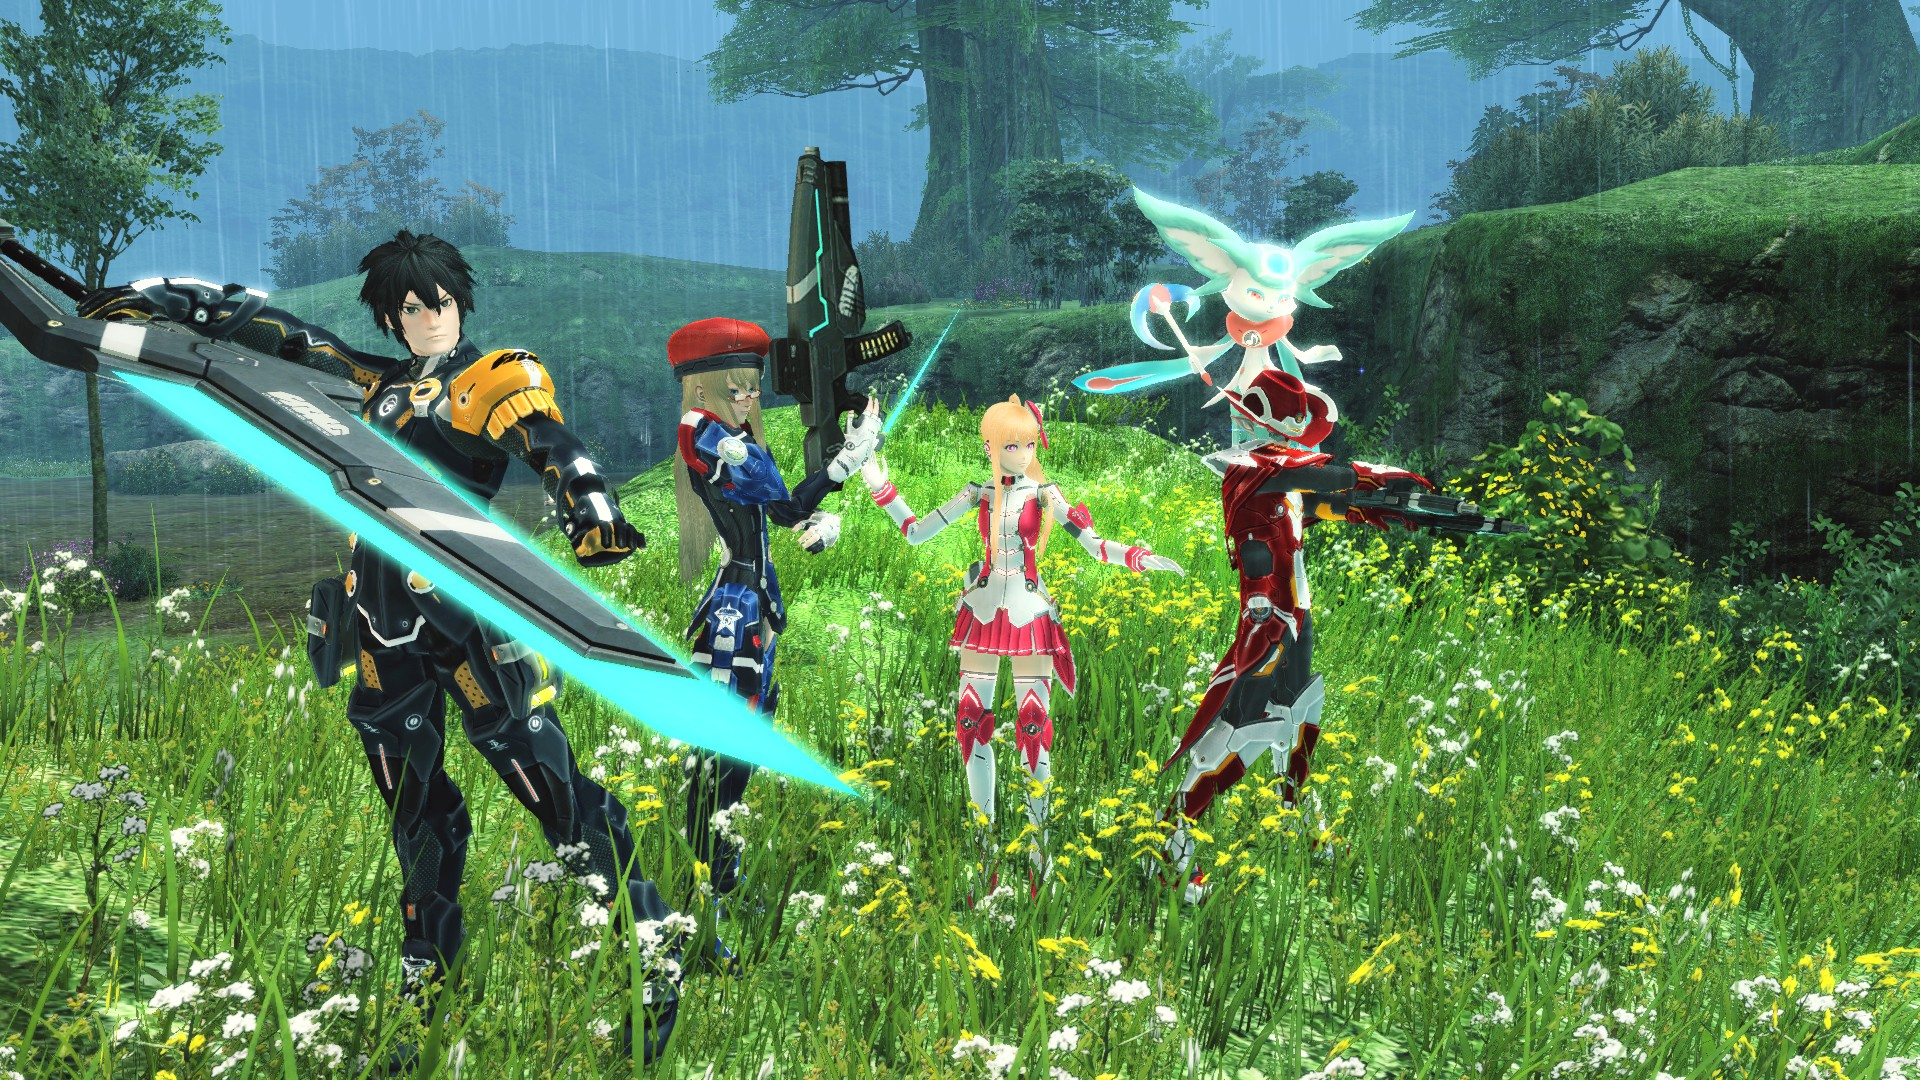 Phantasy Star Online 2 is having a rough PC launch, here's some helpful tips screenshot